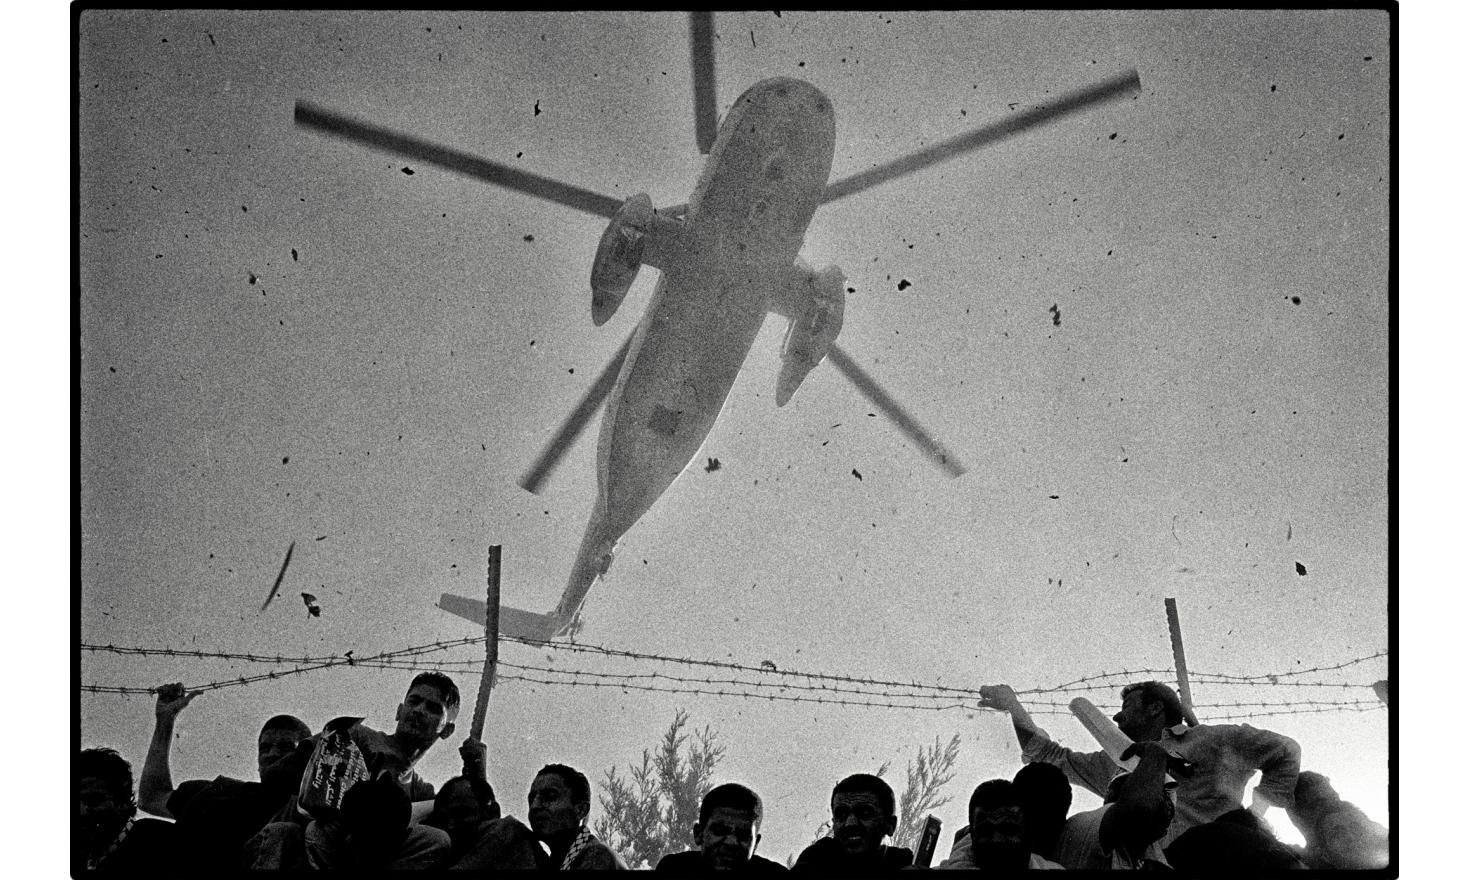 """The helicopter bringing the Arafat's coffin landed at the """"Muquata"""" headquarters. An important page in the history of the Palestinian has finished. Ramallah, Palestinian Authority. West bank. November 2004."""